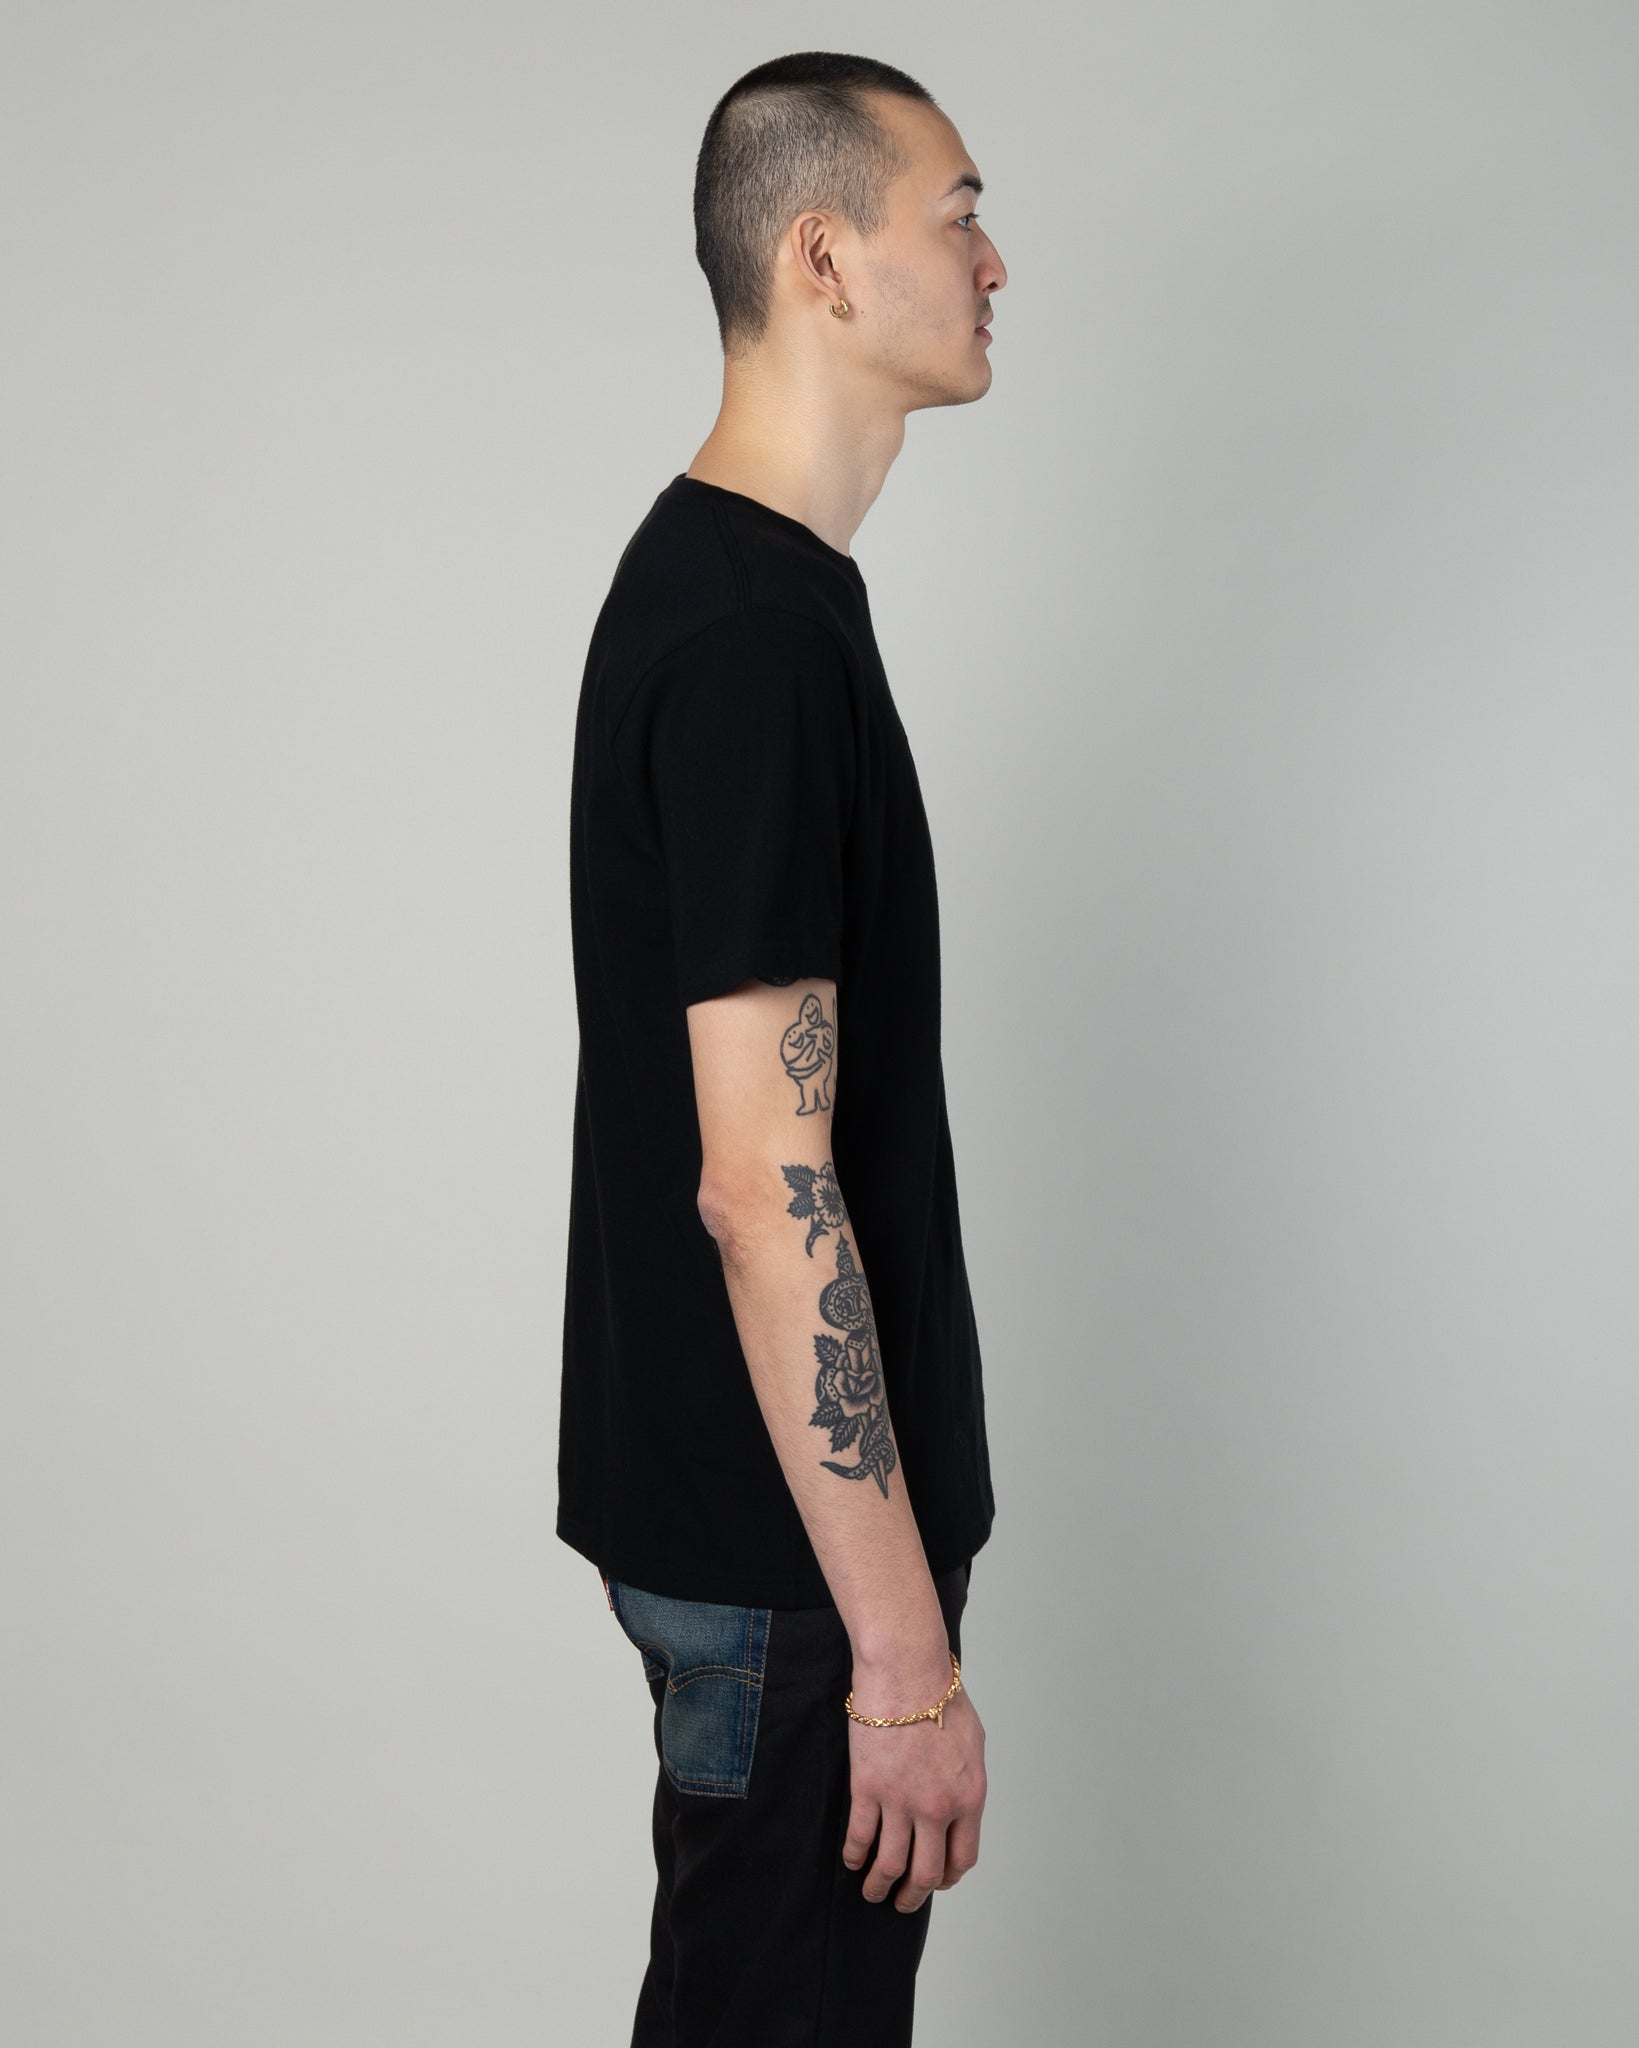 Wolfshead Crew Neck T-Shirt (Type-1) Black